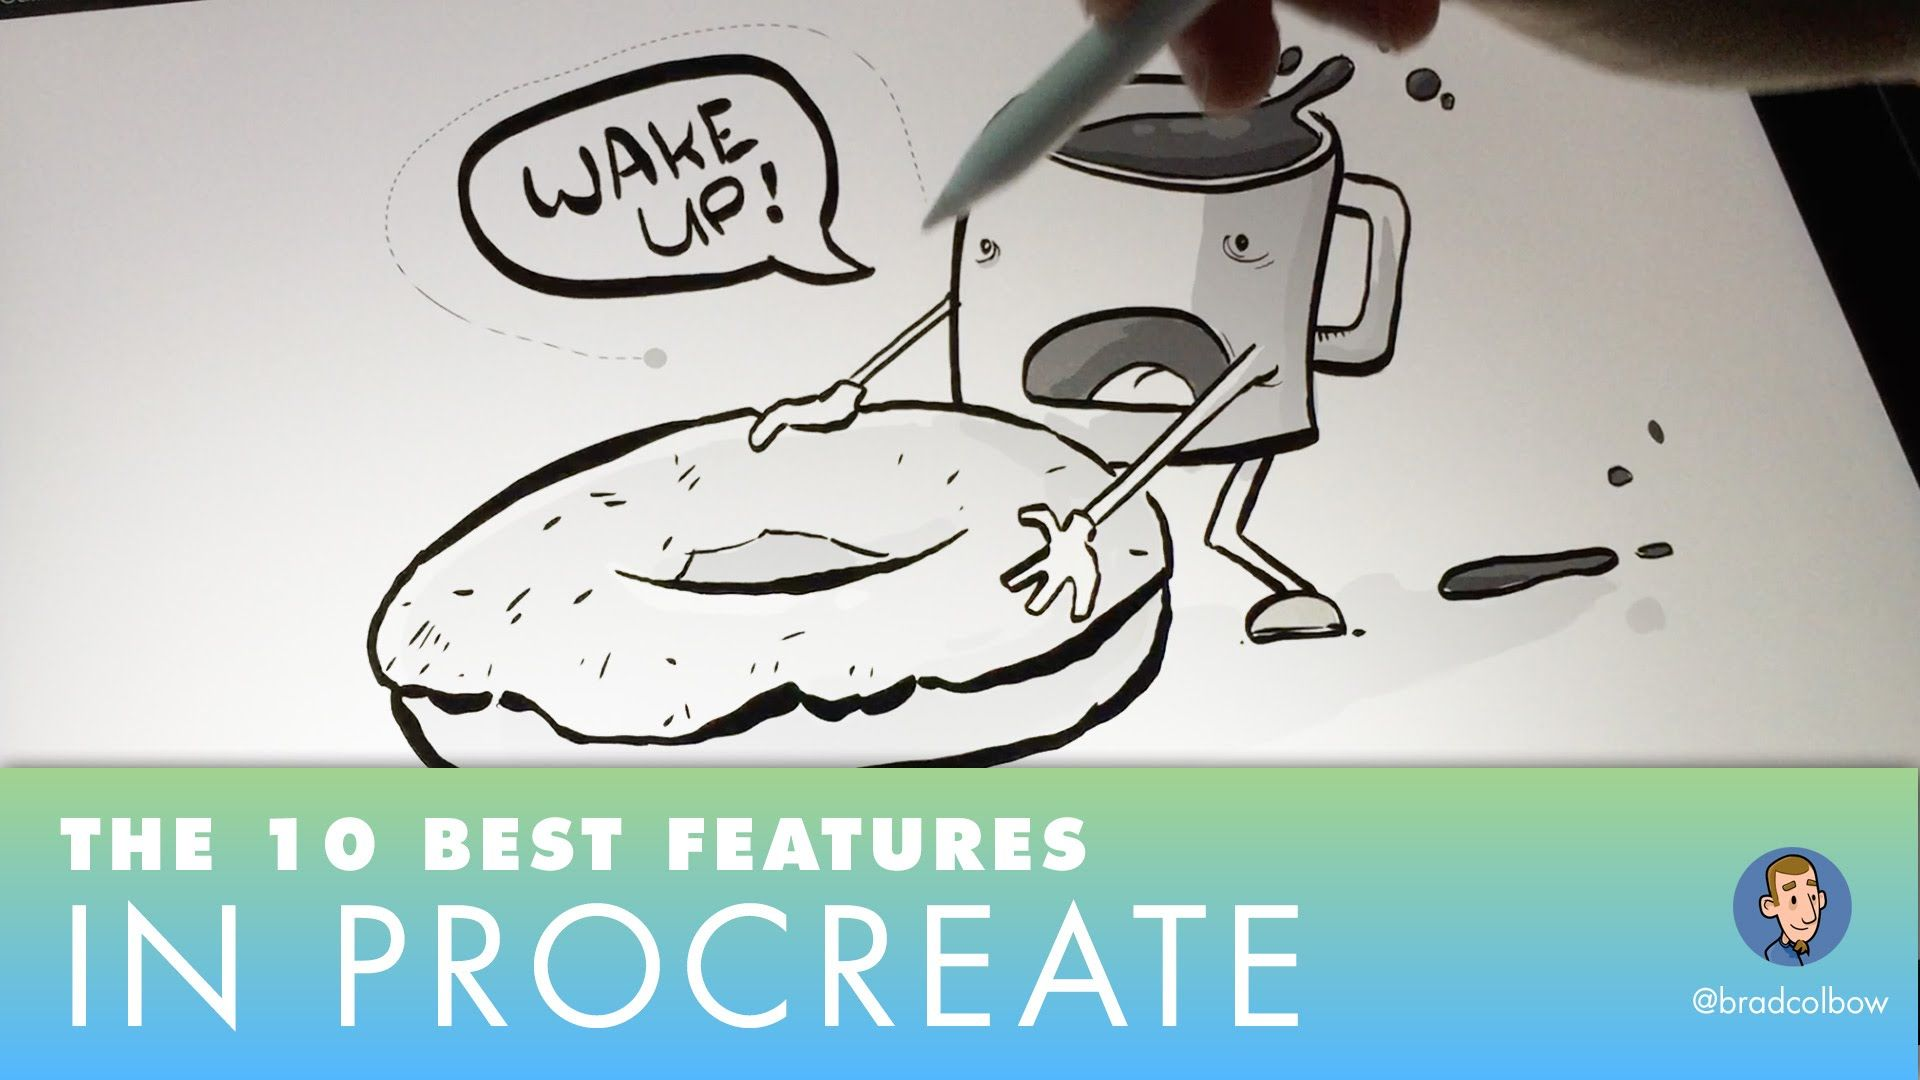 Procreate S 10 Best Features Draw Straight Lines Paint Bucket Tool Gradients And More Youtube Procreate Tutorial Procreate Ipad Pro Procreate Ipad